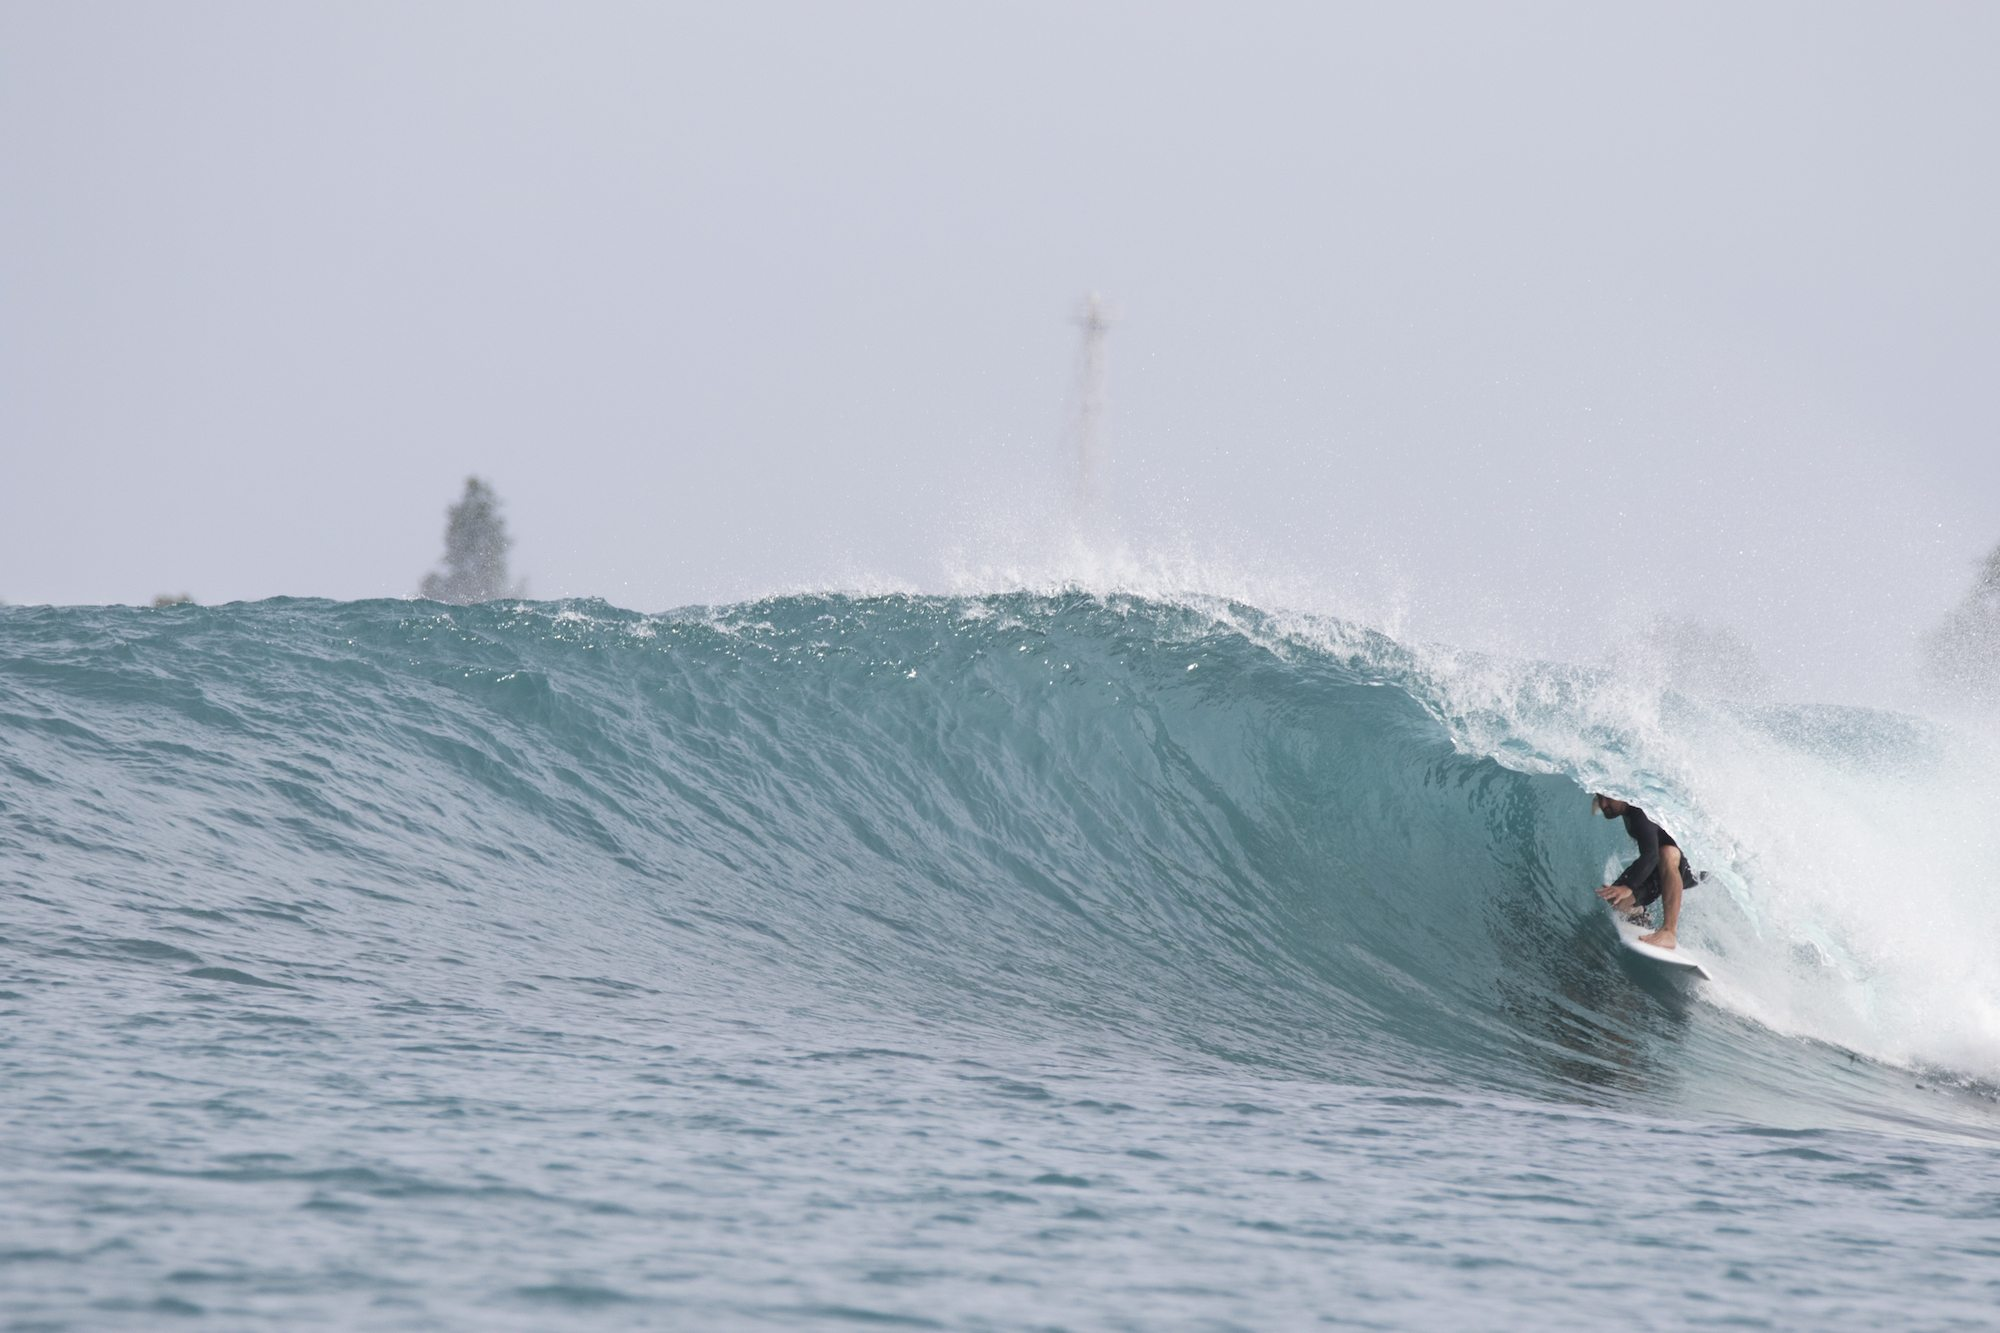 surfer in tiny hollow wave, surf banyak